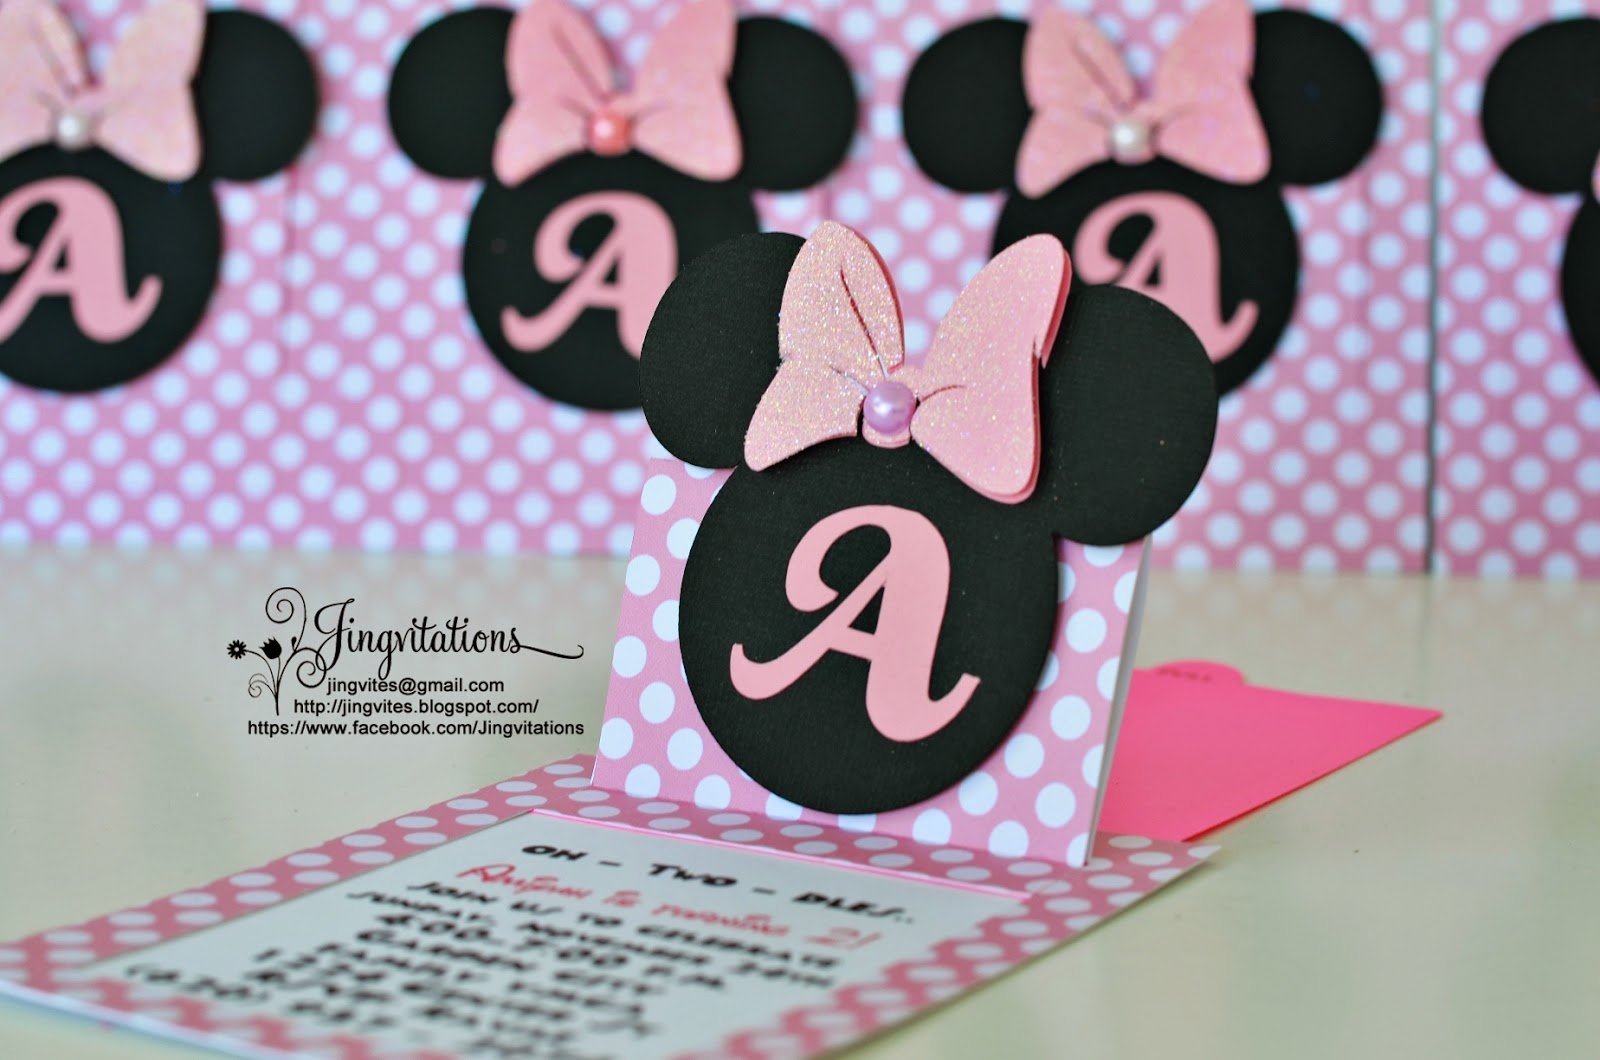 Jingvitations Cricut Handmade Minnie Mouse Pop Up Invitations – Handmade Mickey Mouse Birthday Invitations